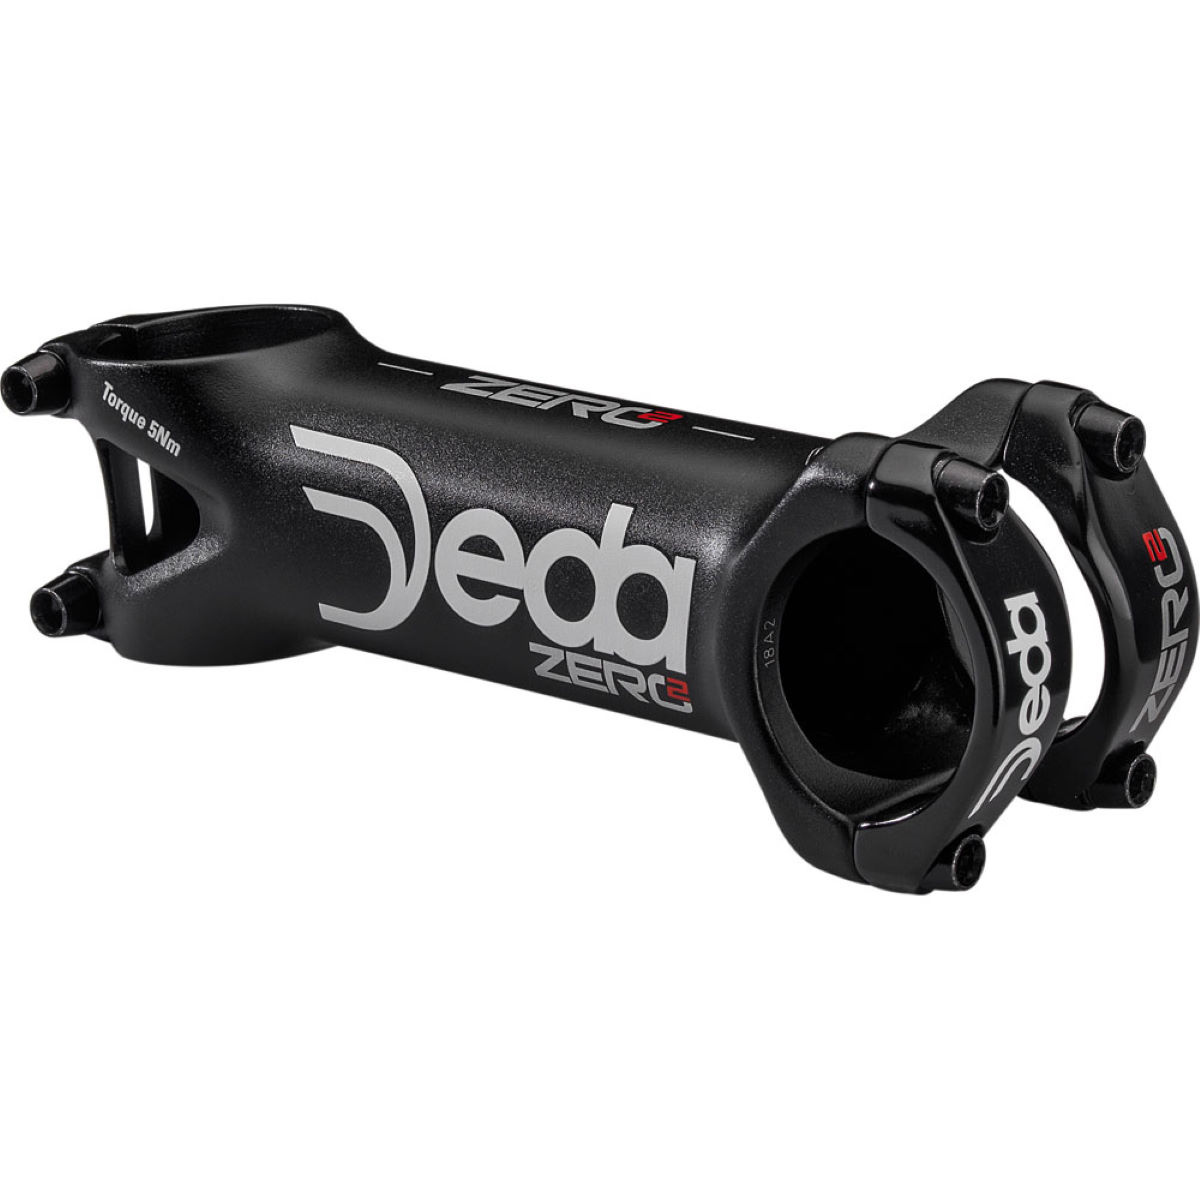 Deda Deda Zero 2 Stem   Stems